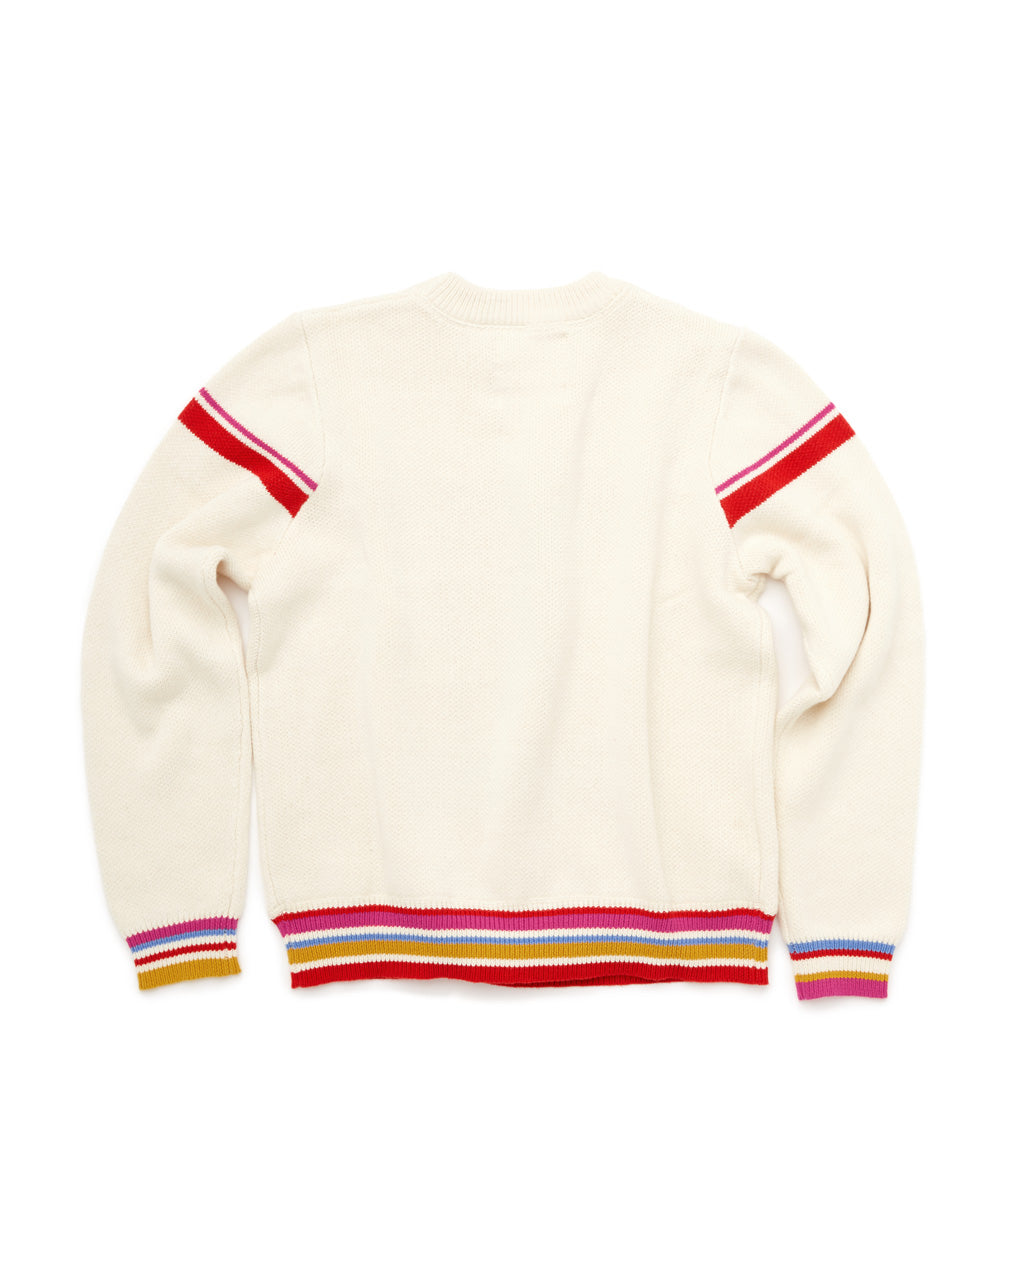 Boogie Shoes Sweater